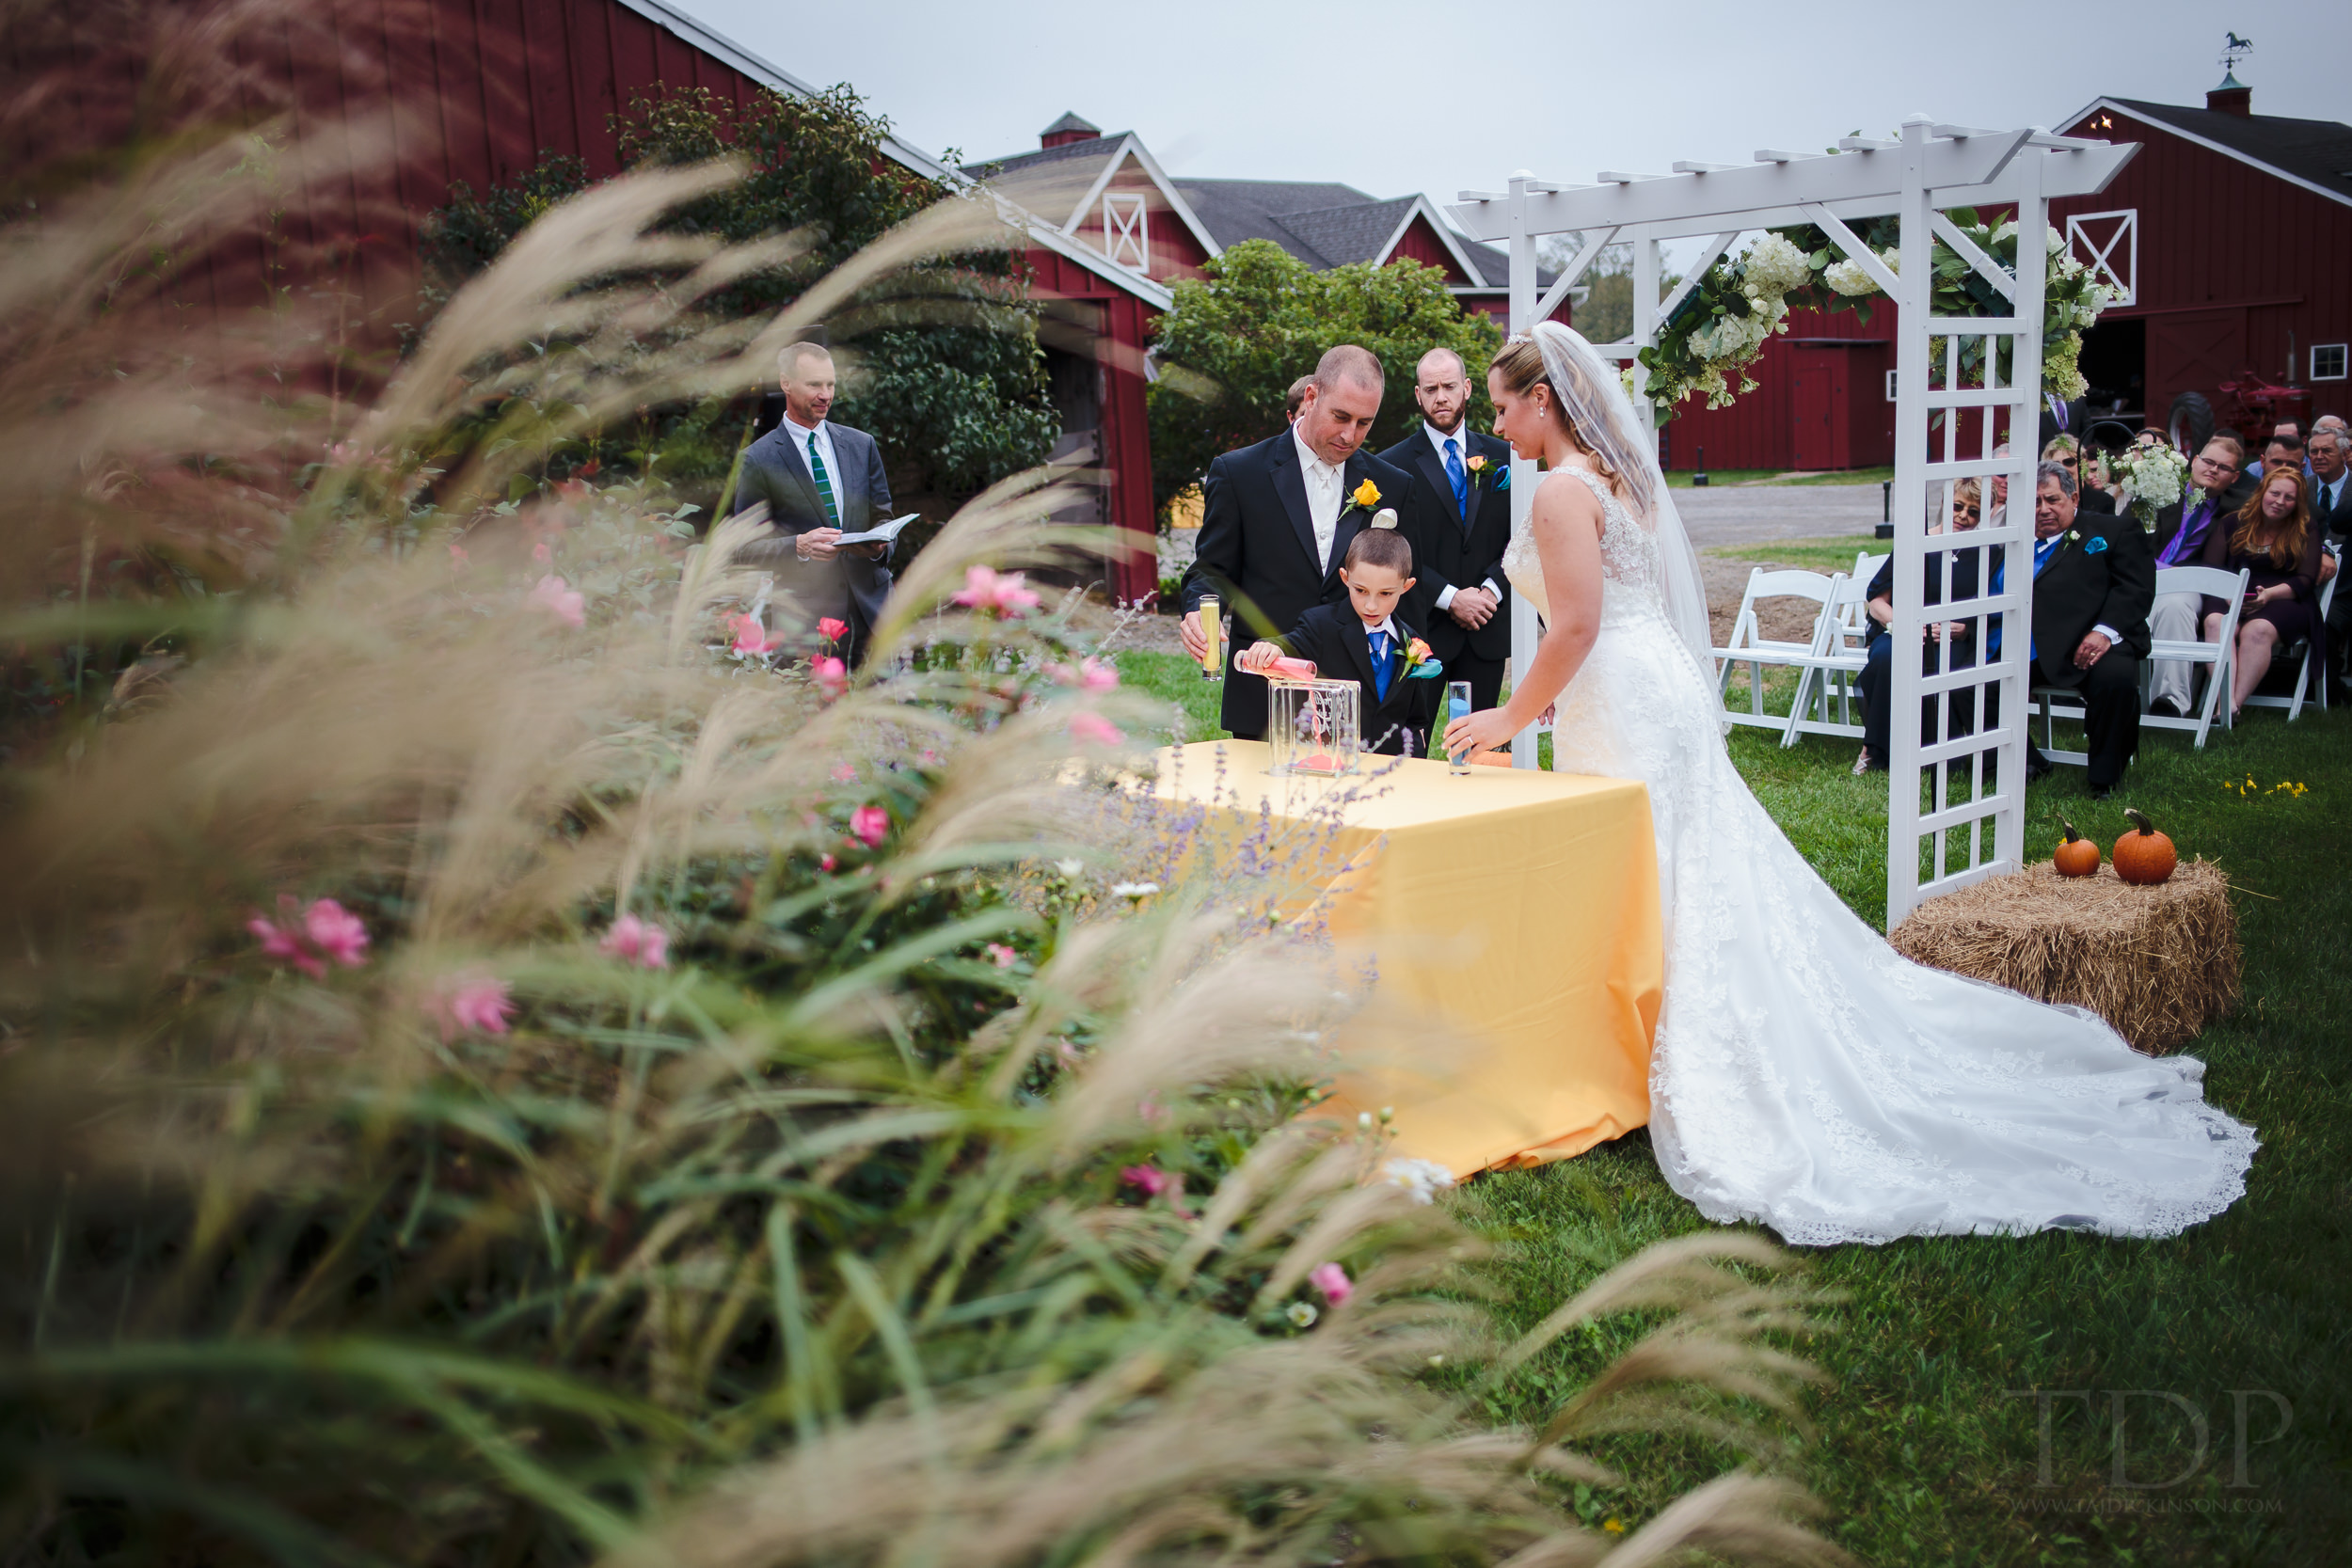 wedding sand ceremony bride groom son stone rows farm stockton nj